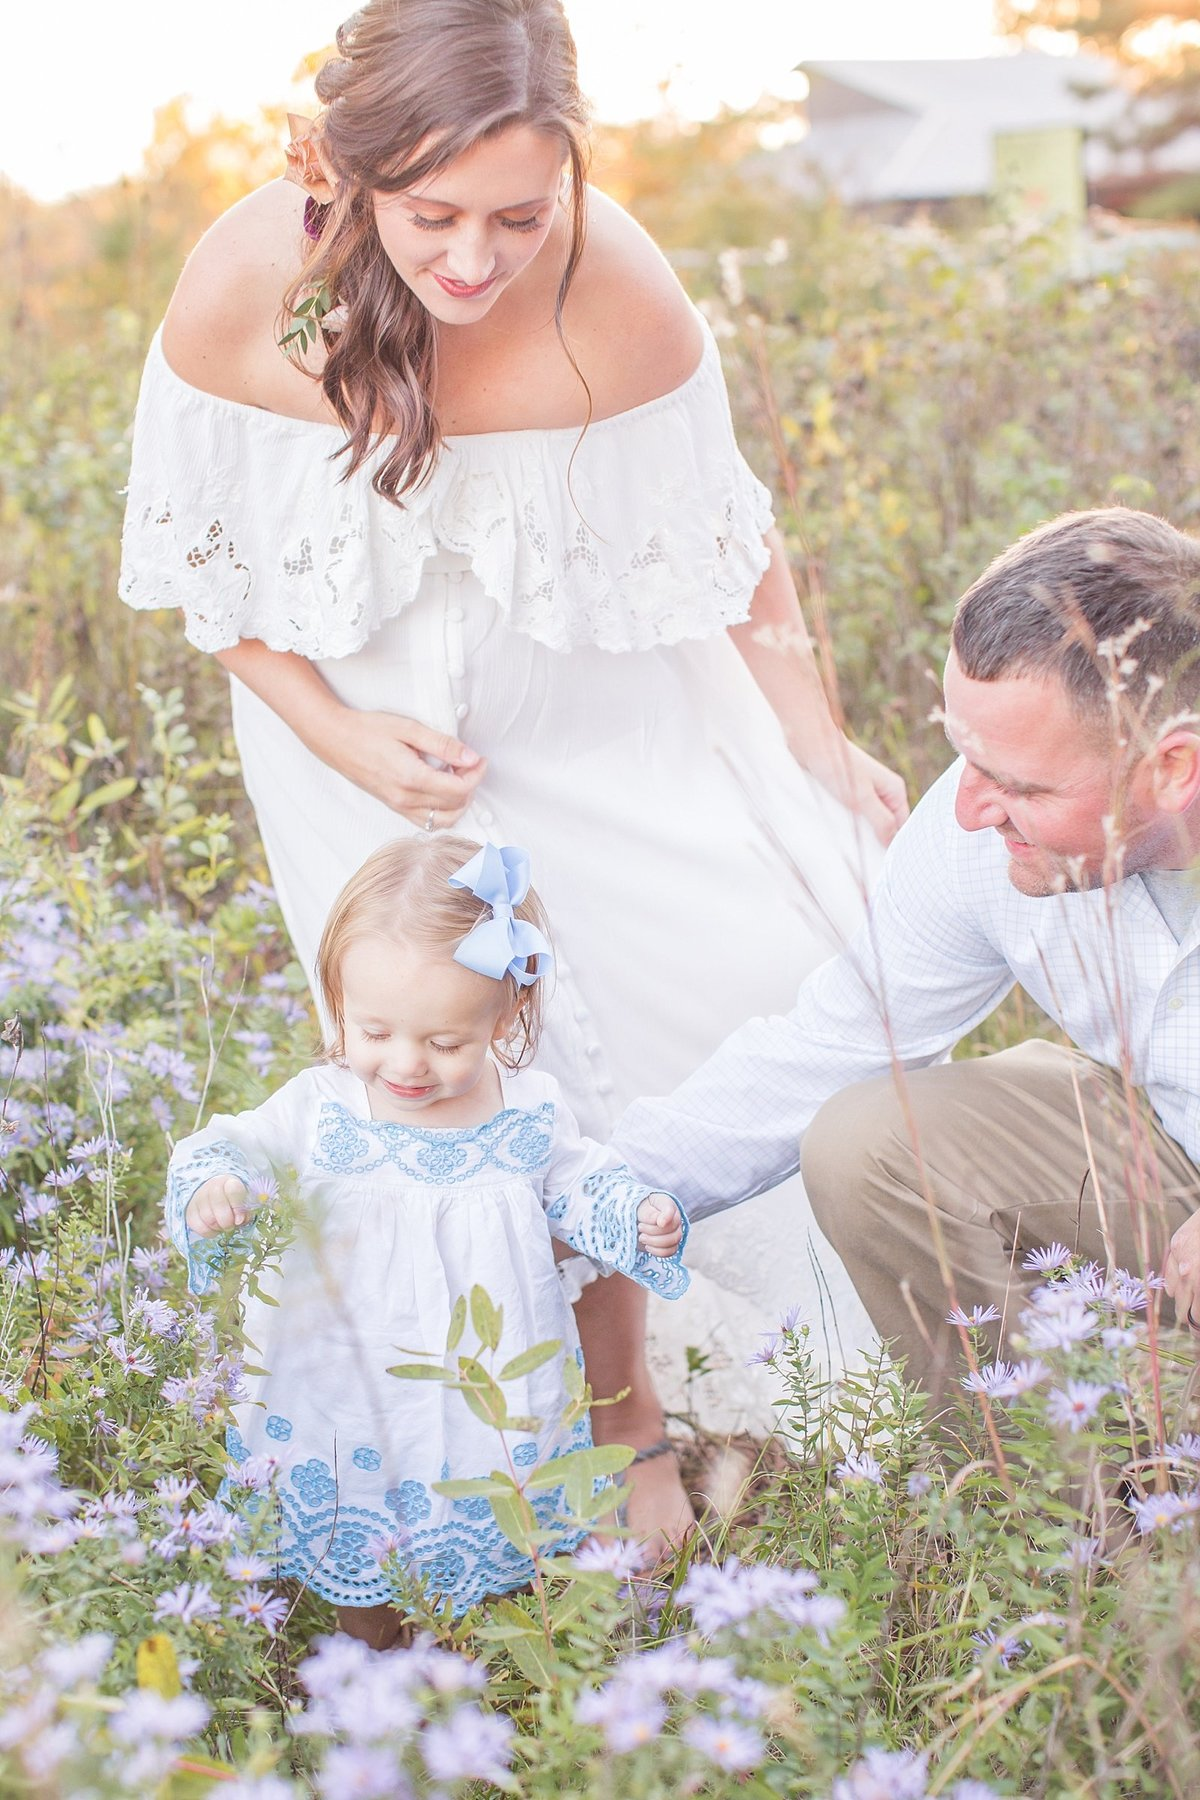 Maryland-maternity-session-jess-becker-photography-3